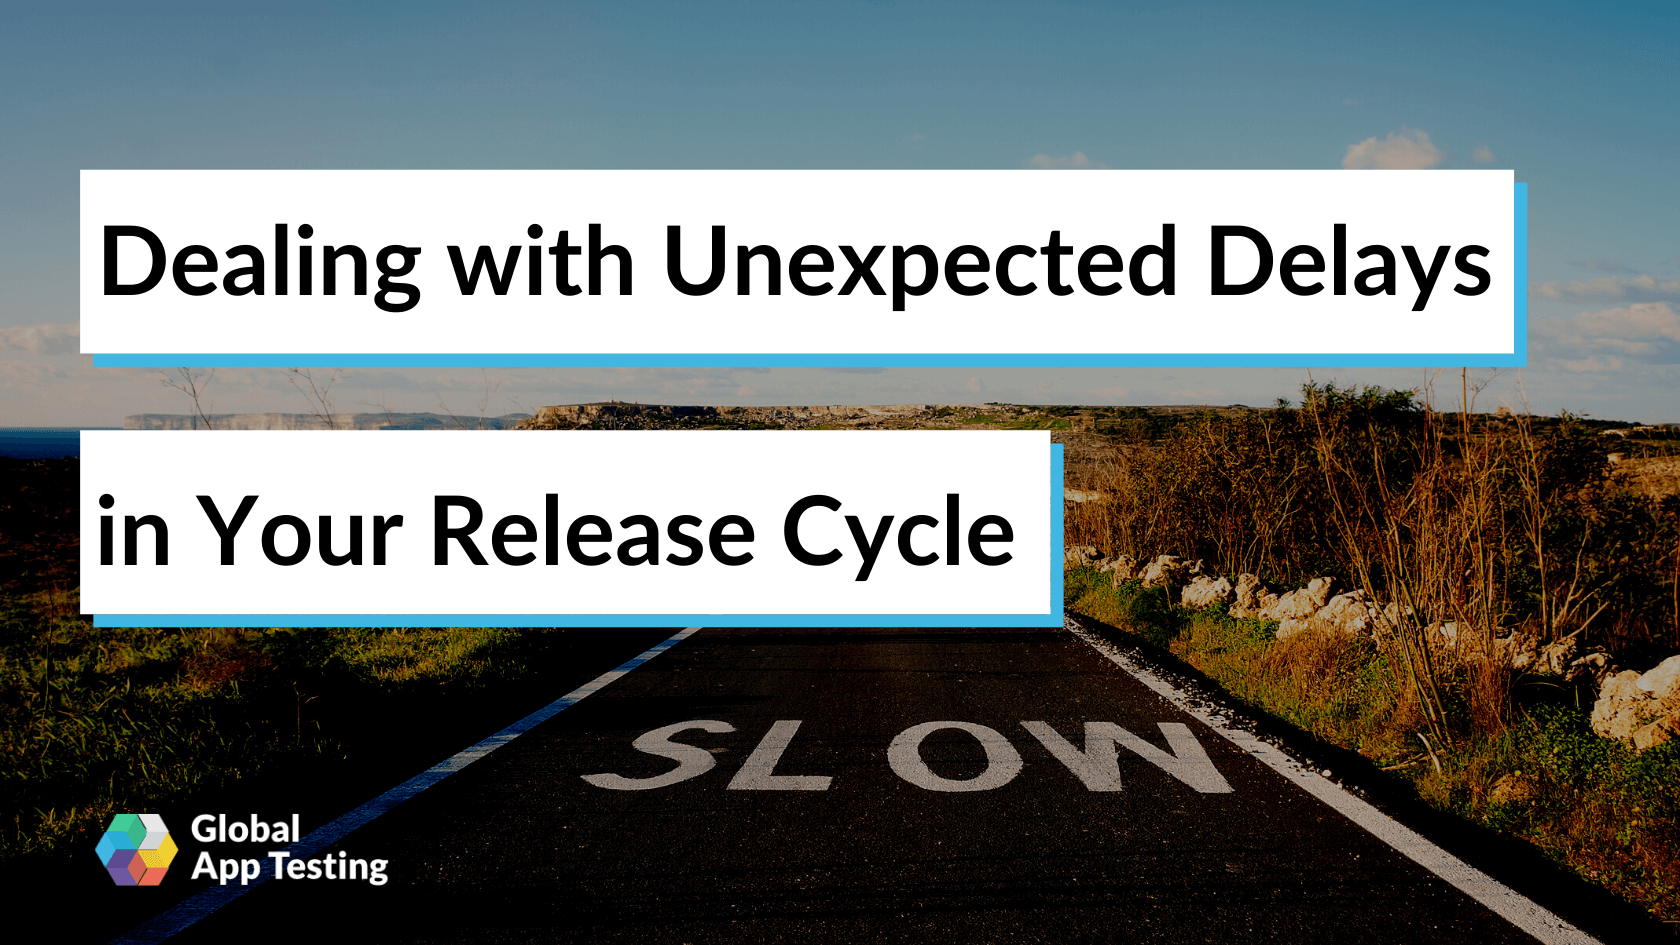 Dealing with Unexpected Delays in Your Release Cycle